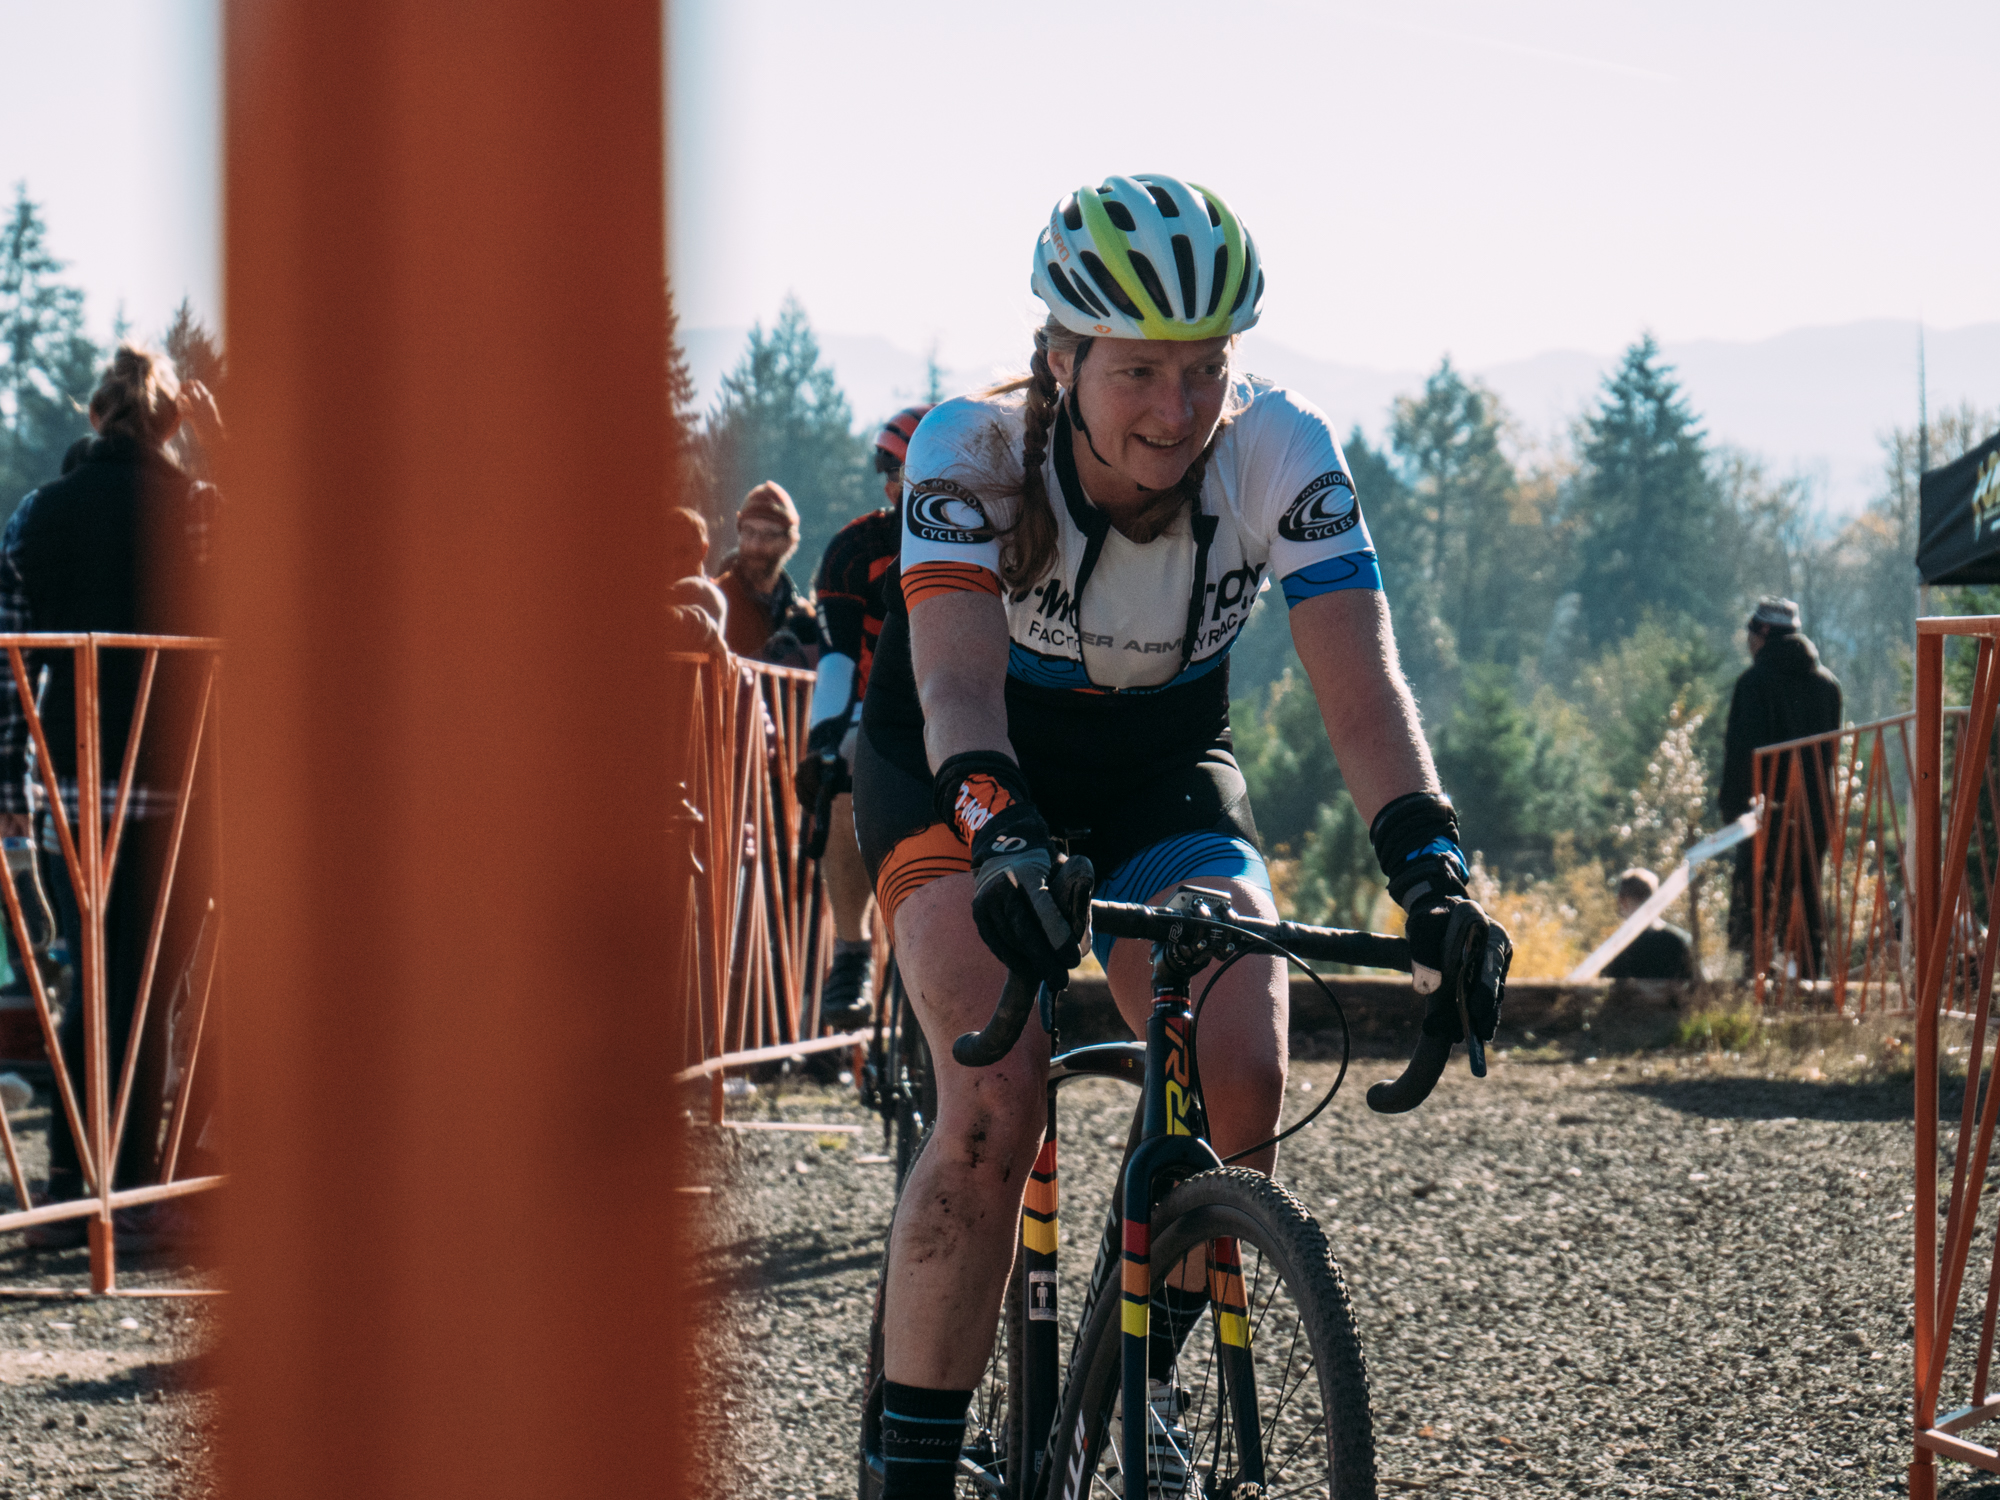 Cyclocross18_CCCX_BartonPark-mettlecycling104.jpg